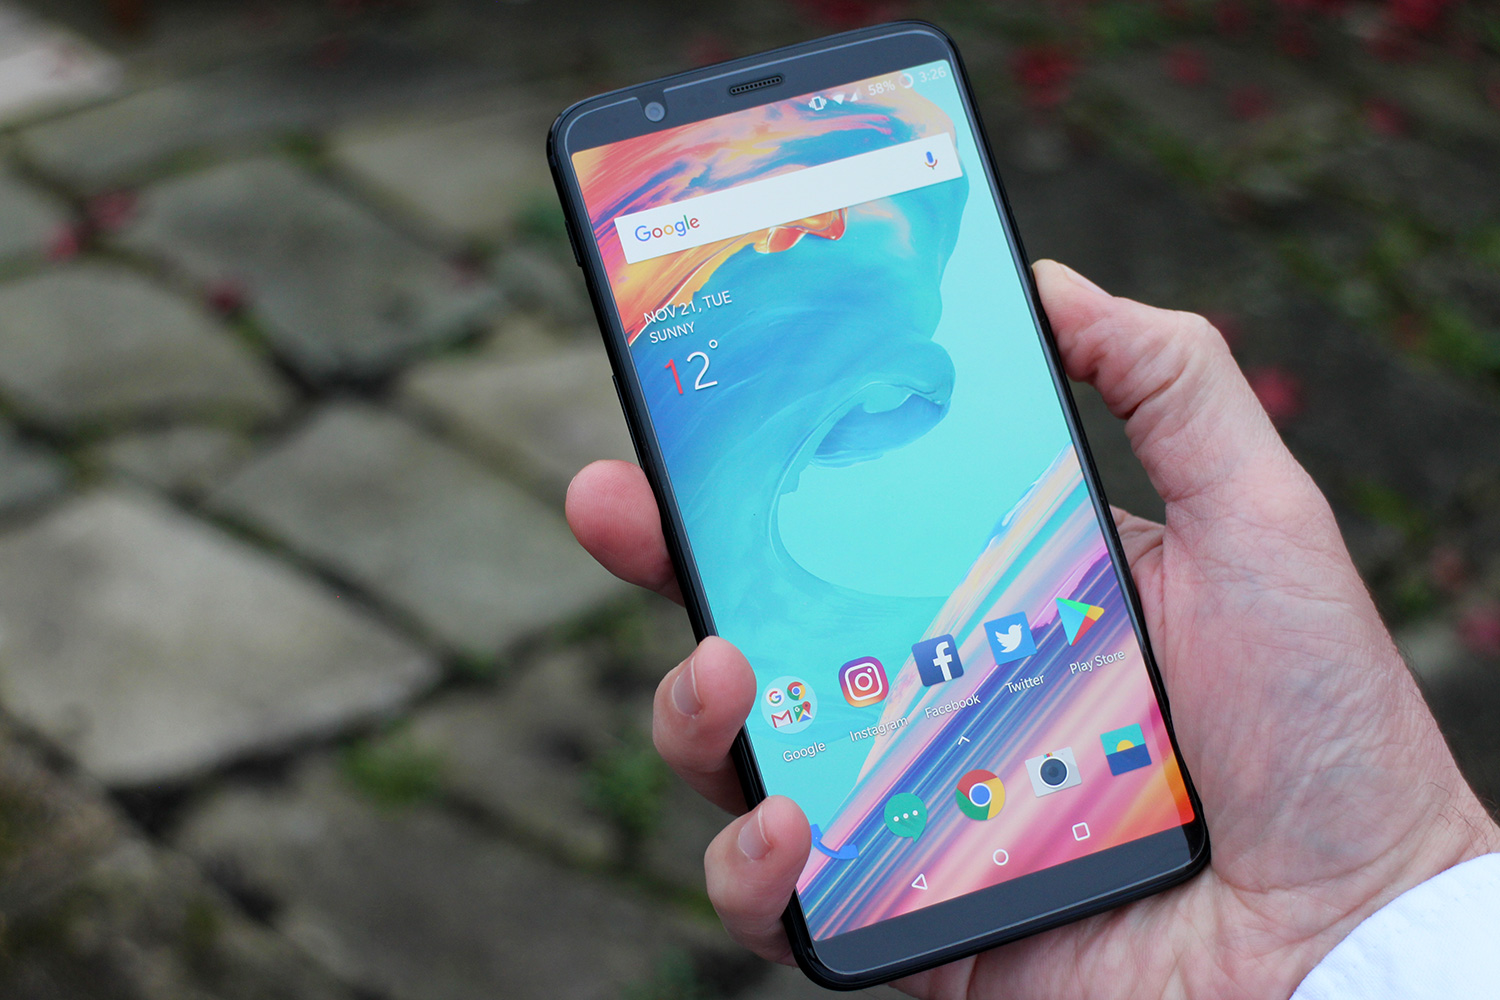 OnePlus 6 Coming In June 2018 With Qualcomm Snapdragon 845